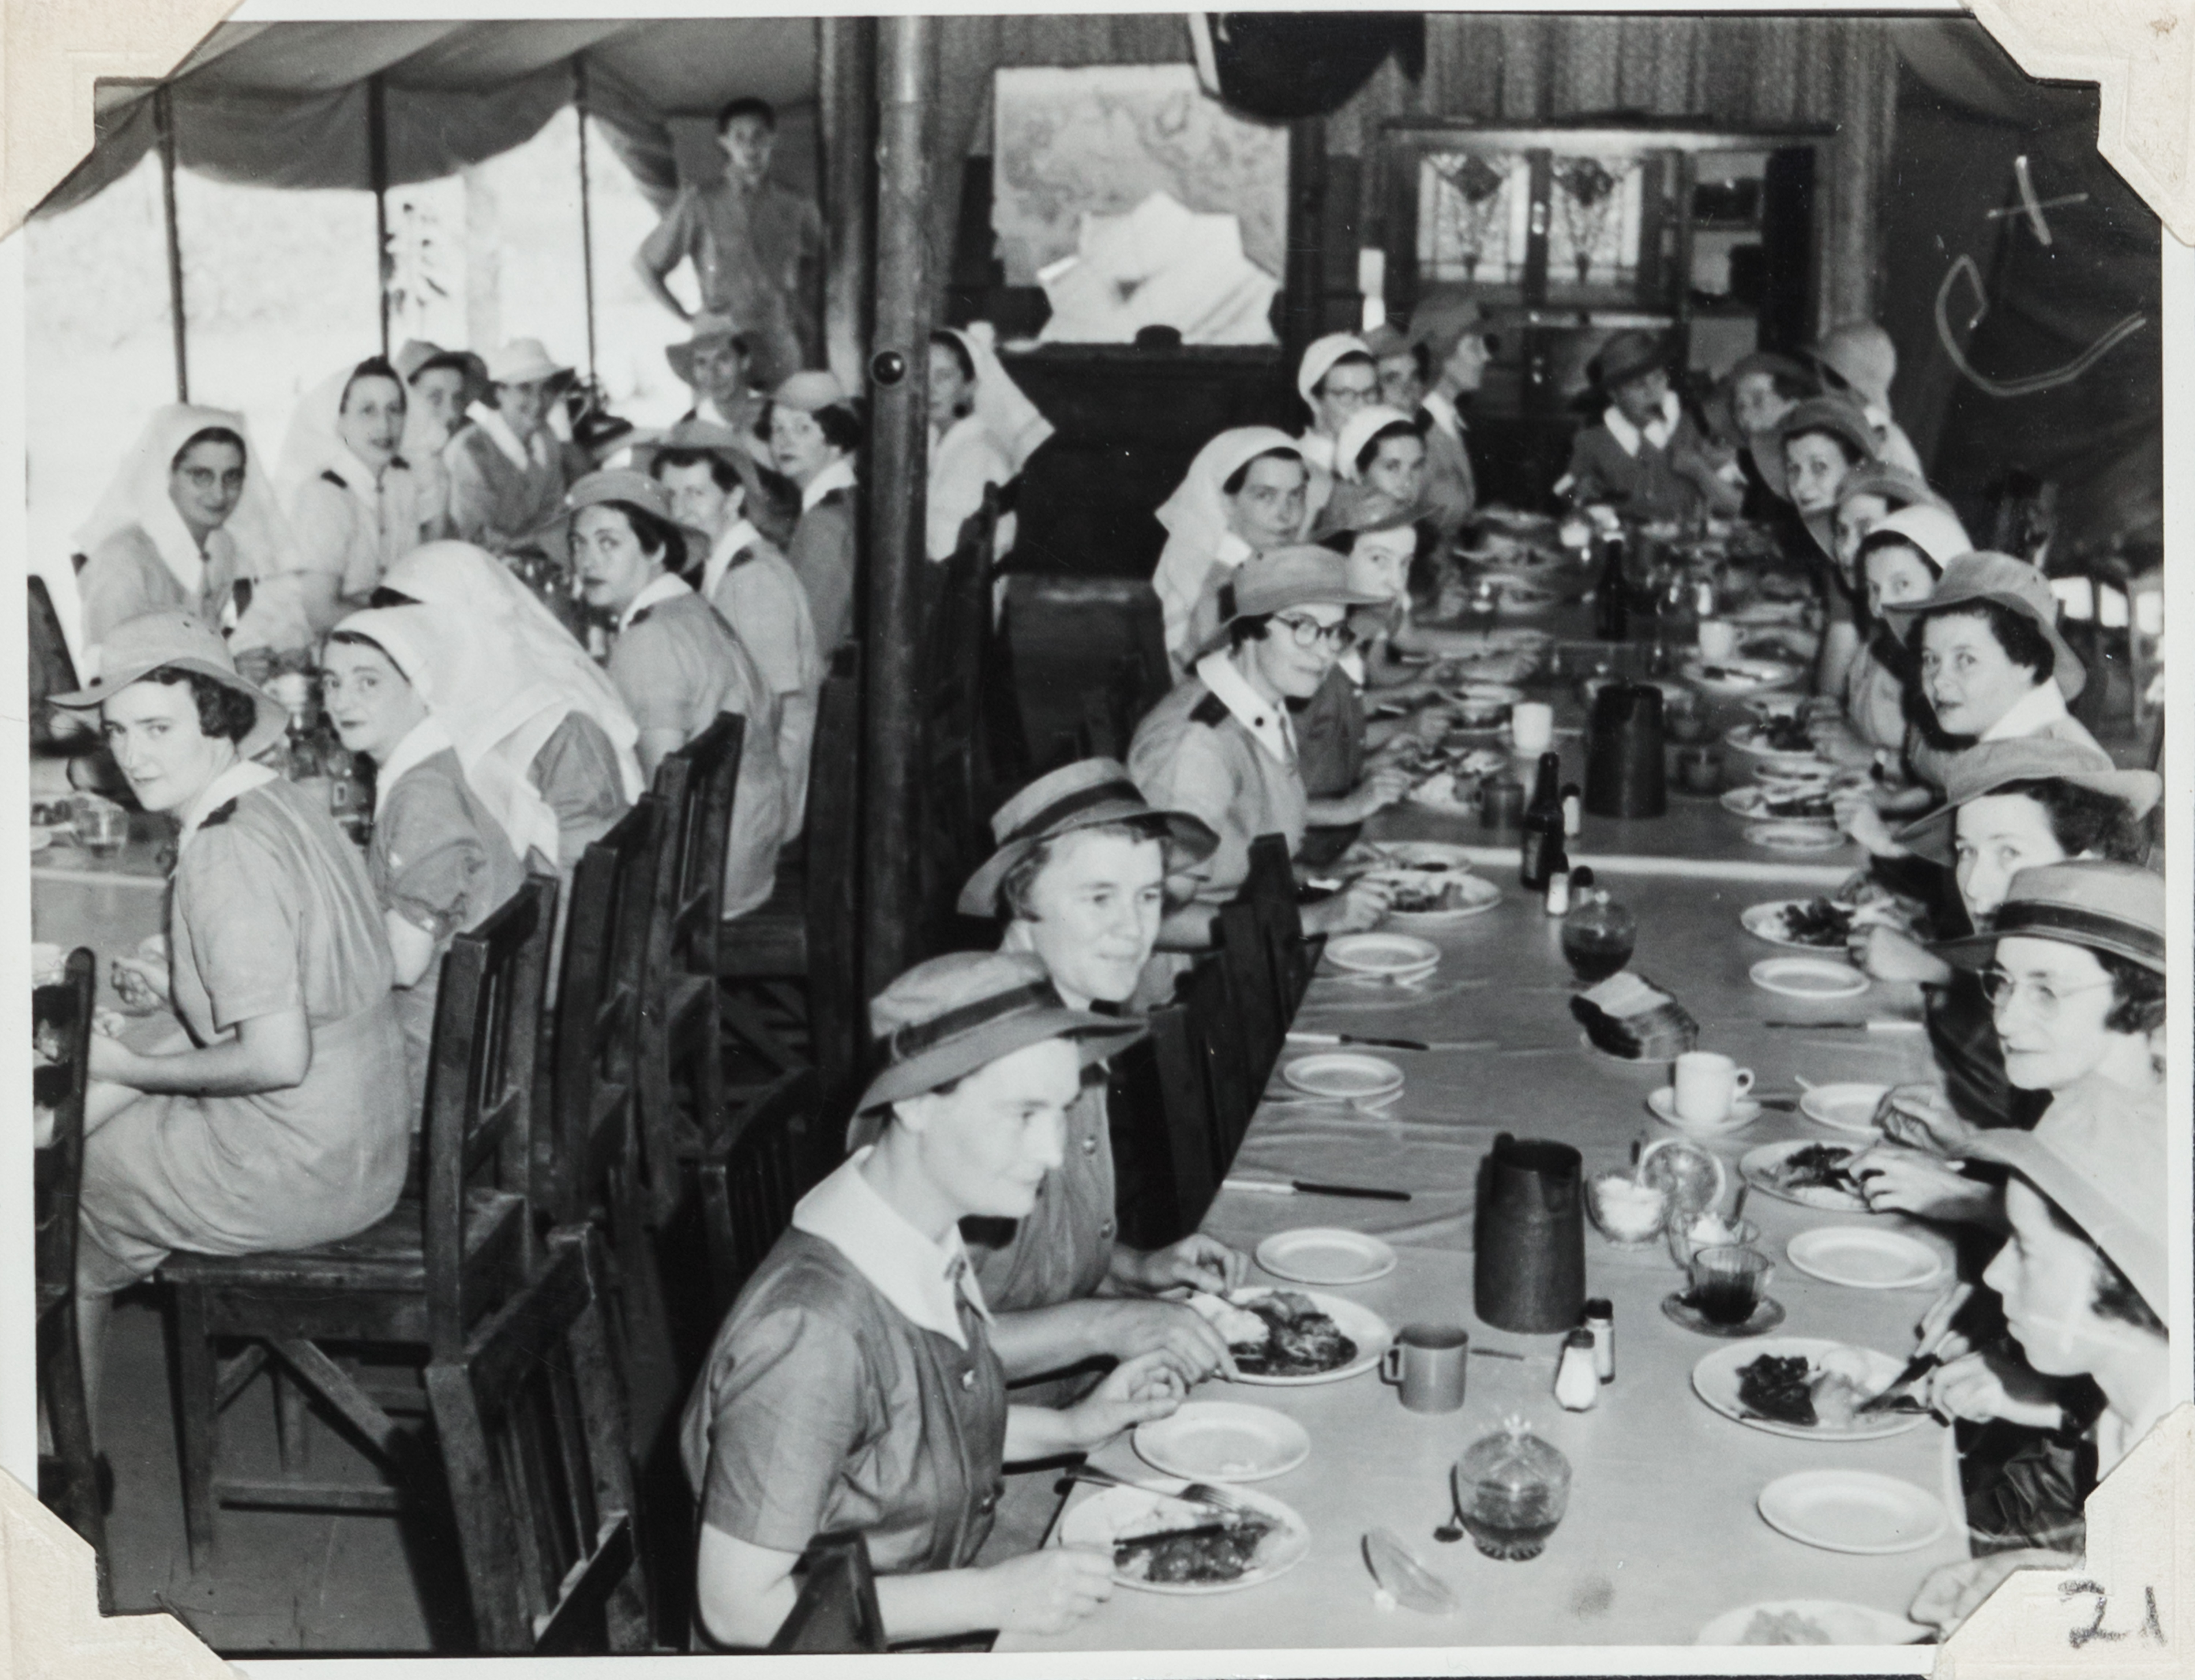 n Sisters Mess. Five large tables placed end to end with nurses seated around and eating a meal together.